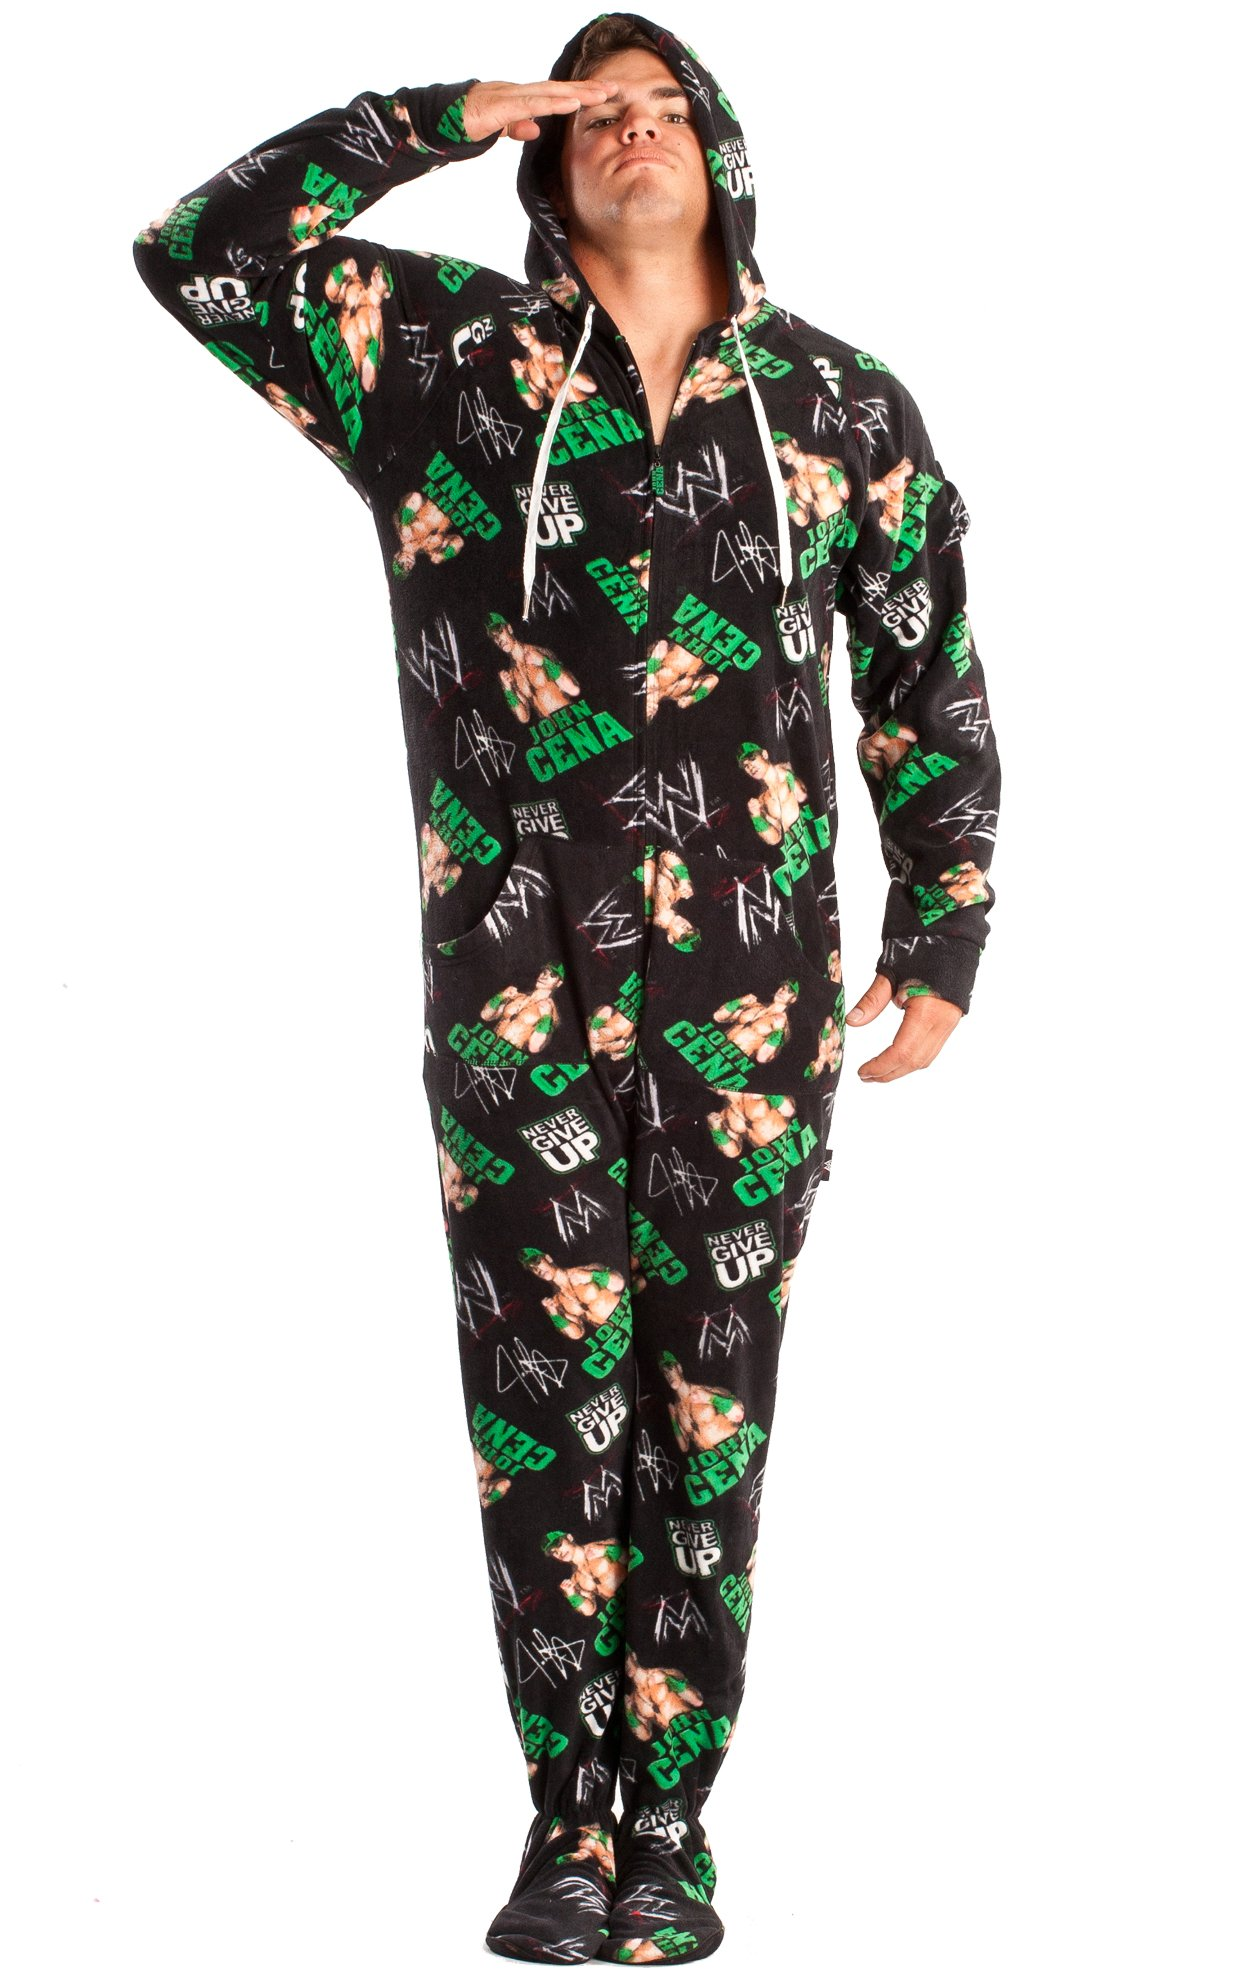 From Disney themed PJ's like Ariel from The Little Mermaid, to Stitch from Lilo and Stitch, bedtime can also be fun with these footed pajamas! We know that getting a good night's rest is priceless. You'll want to feel comfortable and relaxed when it's time for lights out.